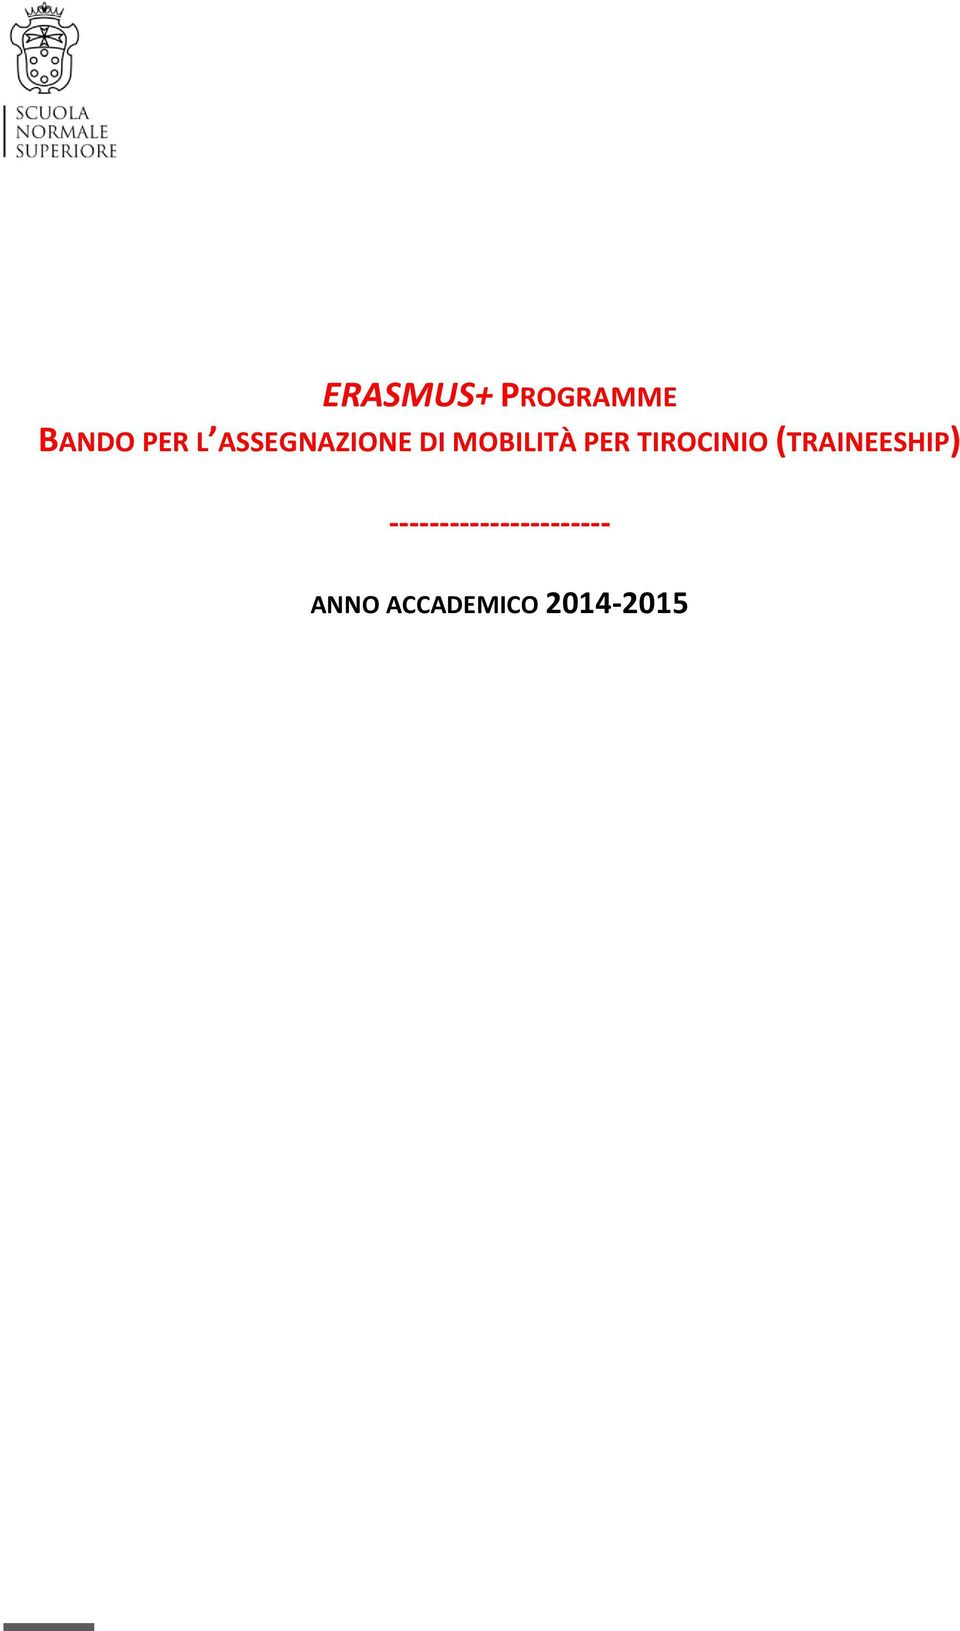 TIROCINIO (TRAINEESHIP)